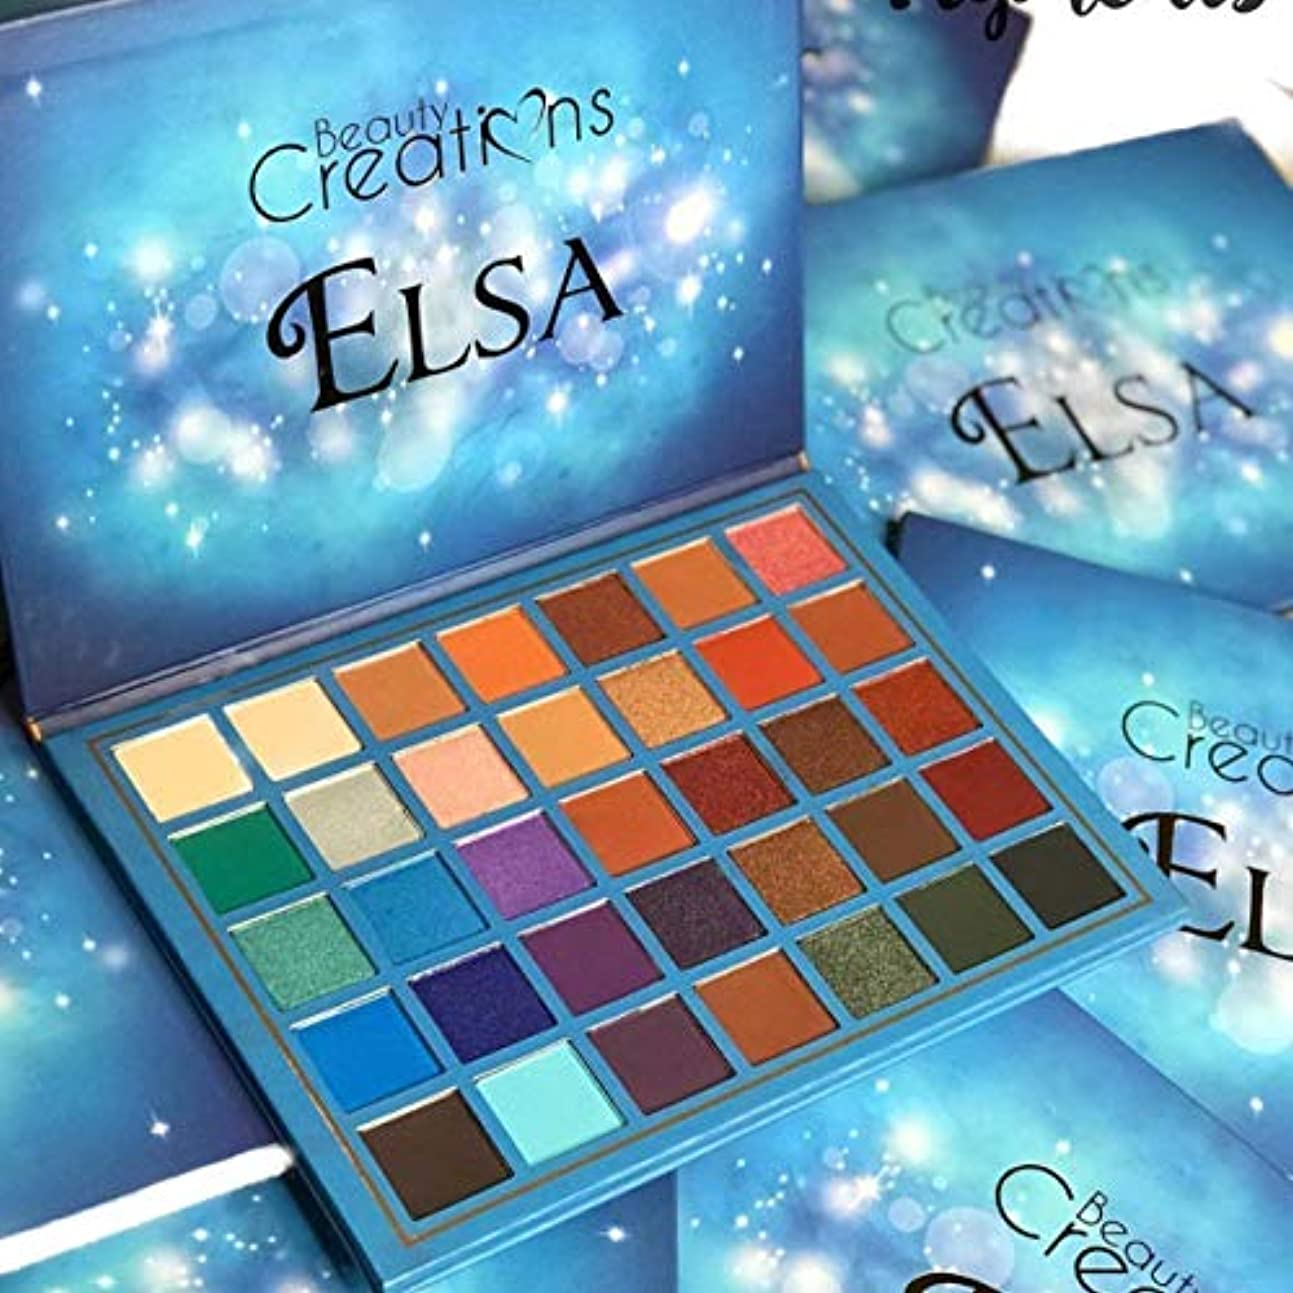 スキャン役員競うElsa 35 Color Elsa Eyeshadow Palette By Beauty Creation